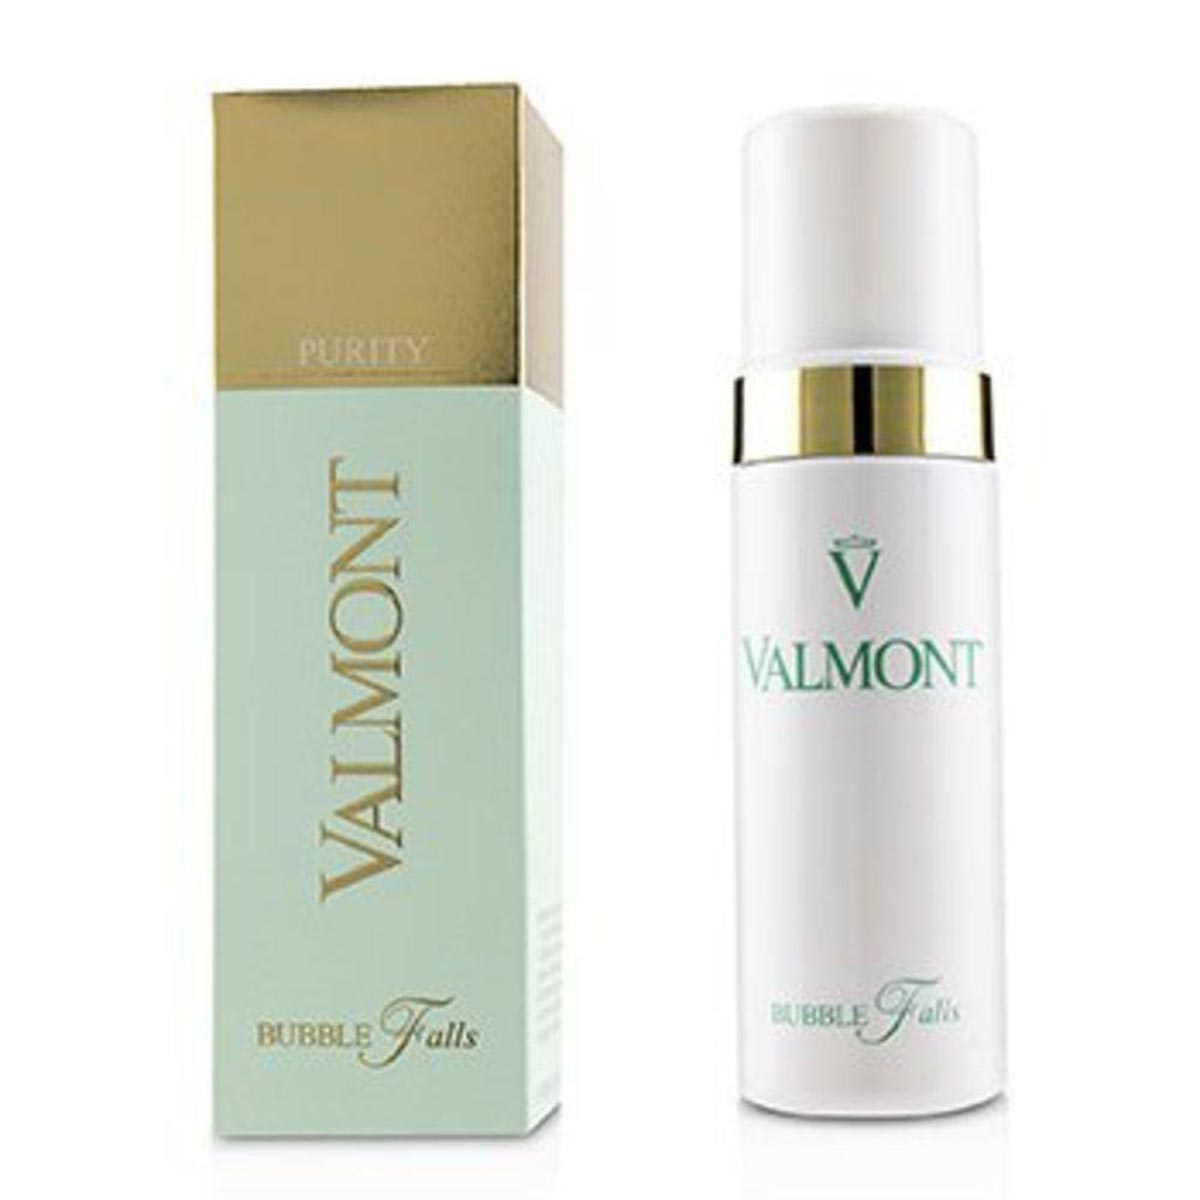 Valmont purity bubble falls fluid 150ml